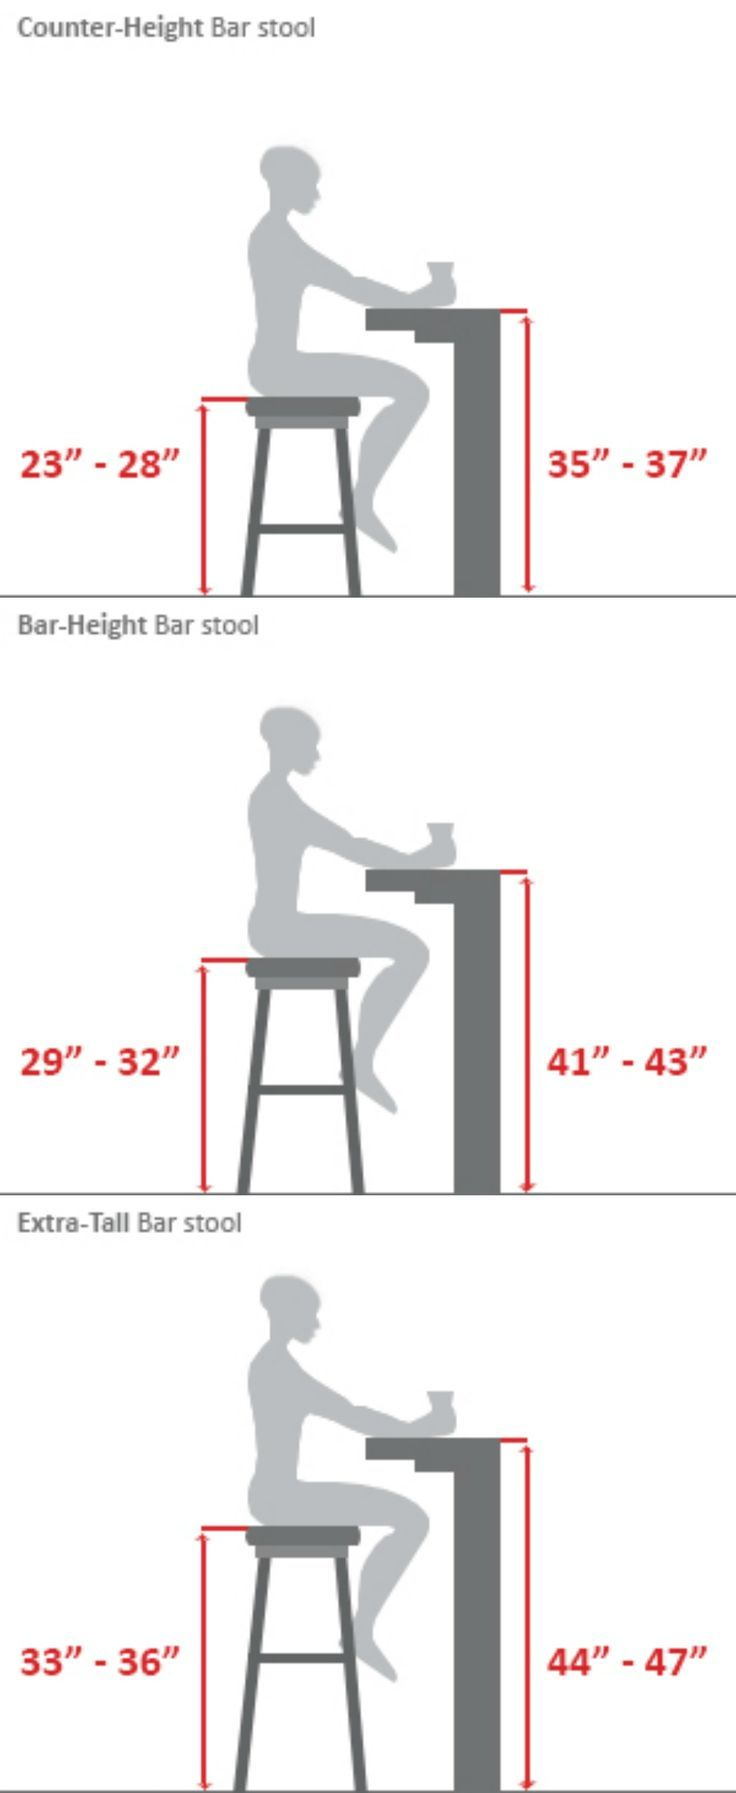 Bar stool buying guideor the builders guide when building desks when building desks tables or bars these measurements come in handy design interiordesign watchthetrailerfo